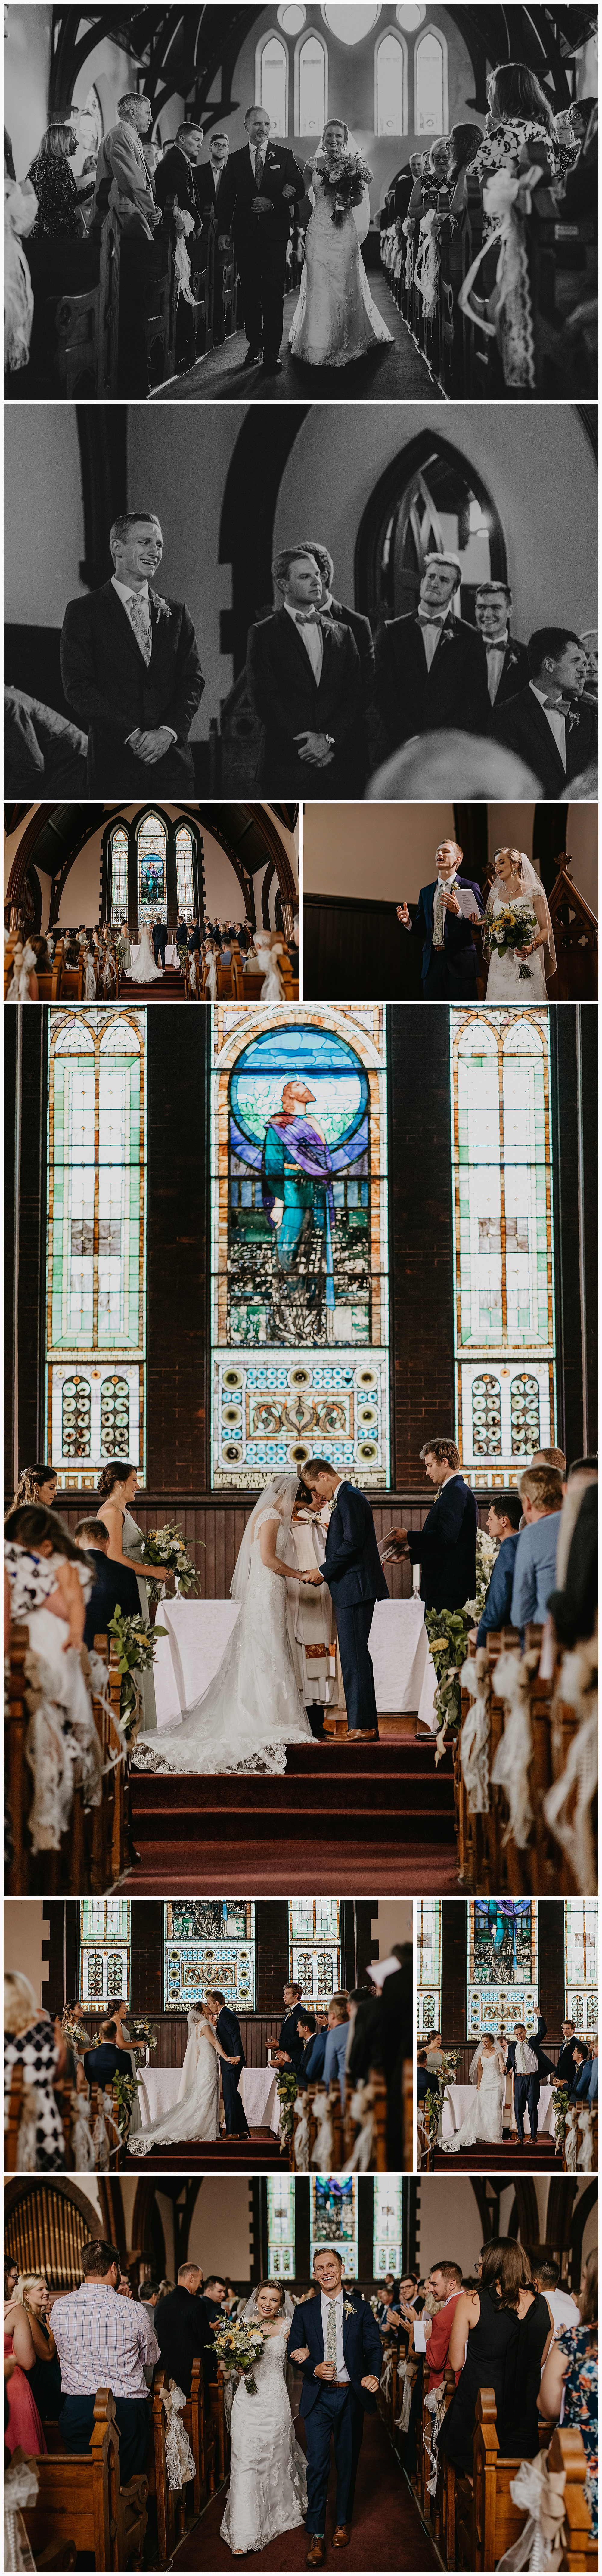 University of Virginia Chapel Wedding by Candle & Quill Photography | Charlotte NC Wedding Photographer, Virginia Wedding Photographer, Virginia Wedding Ideas, UVA Chapel Wedding, Charlottesville VA Wedding, Charlottesville VA Wedding Photographer, UVA Chapel, Virginia Wedding at King Family Vineyards, Virginia Reception at King Family Vineyards, VA Details and Lace LLC Wedding Planning, Maggie Sottero Designs Wedding Dress, Emotional First Look with Dad Groom, Traditional Chapel Wedding Ideas